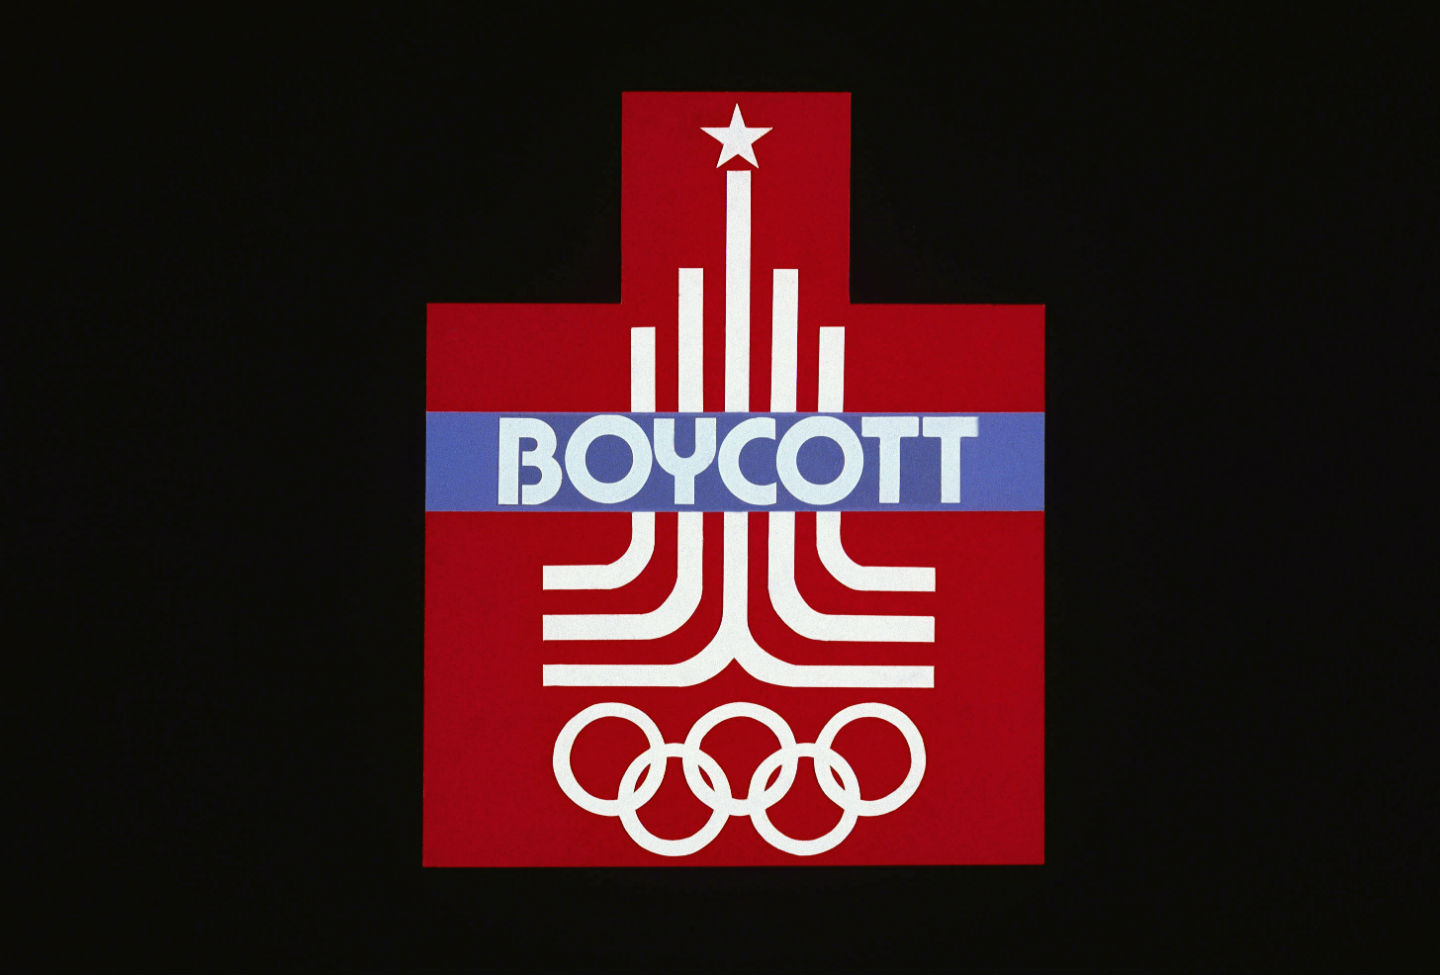 March 21, 1980: Carter Announces US Boycott of the Moscow Olympics   The Nation